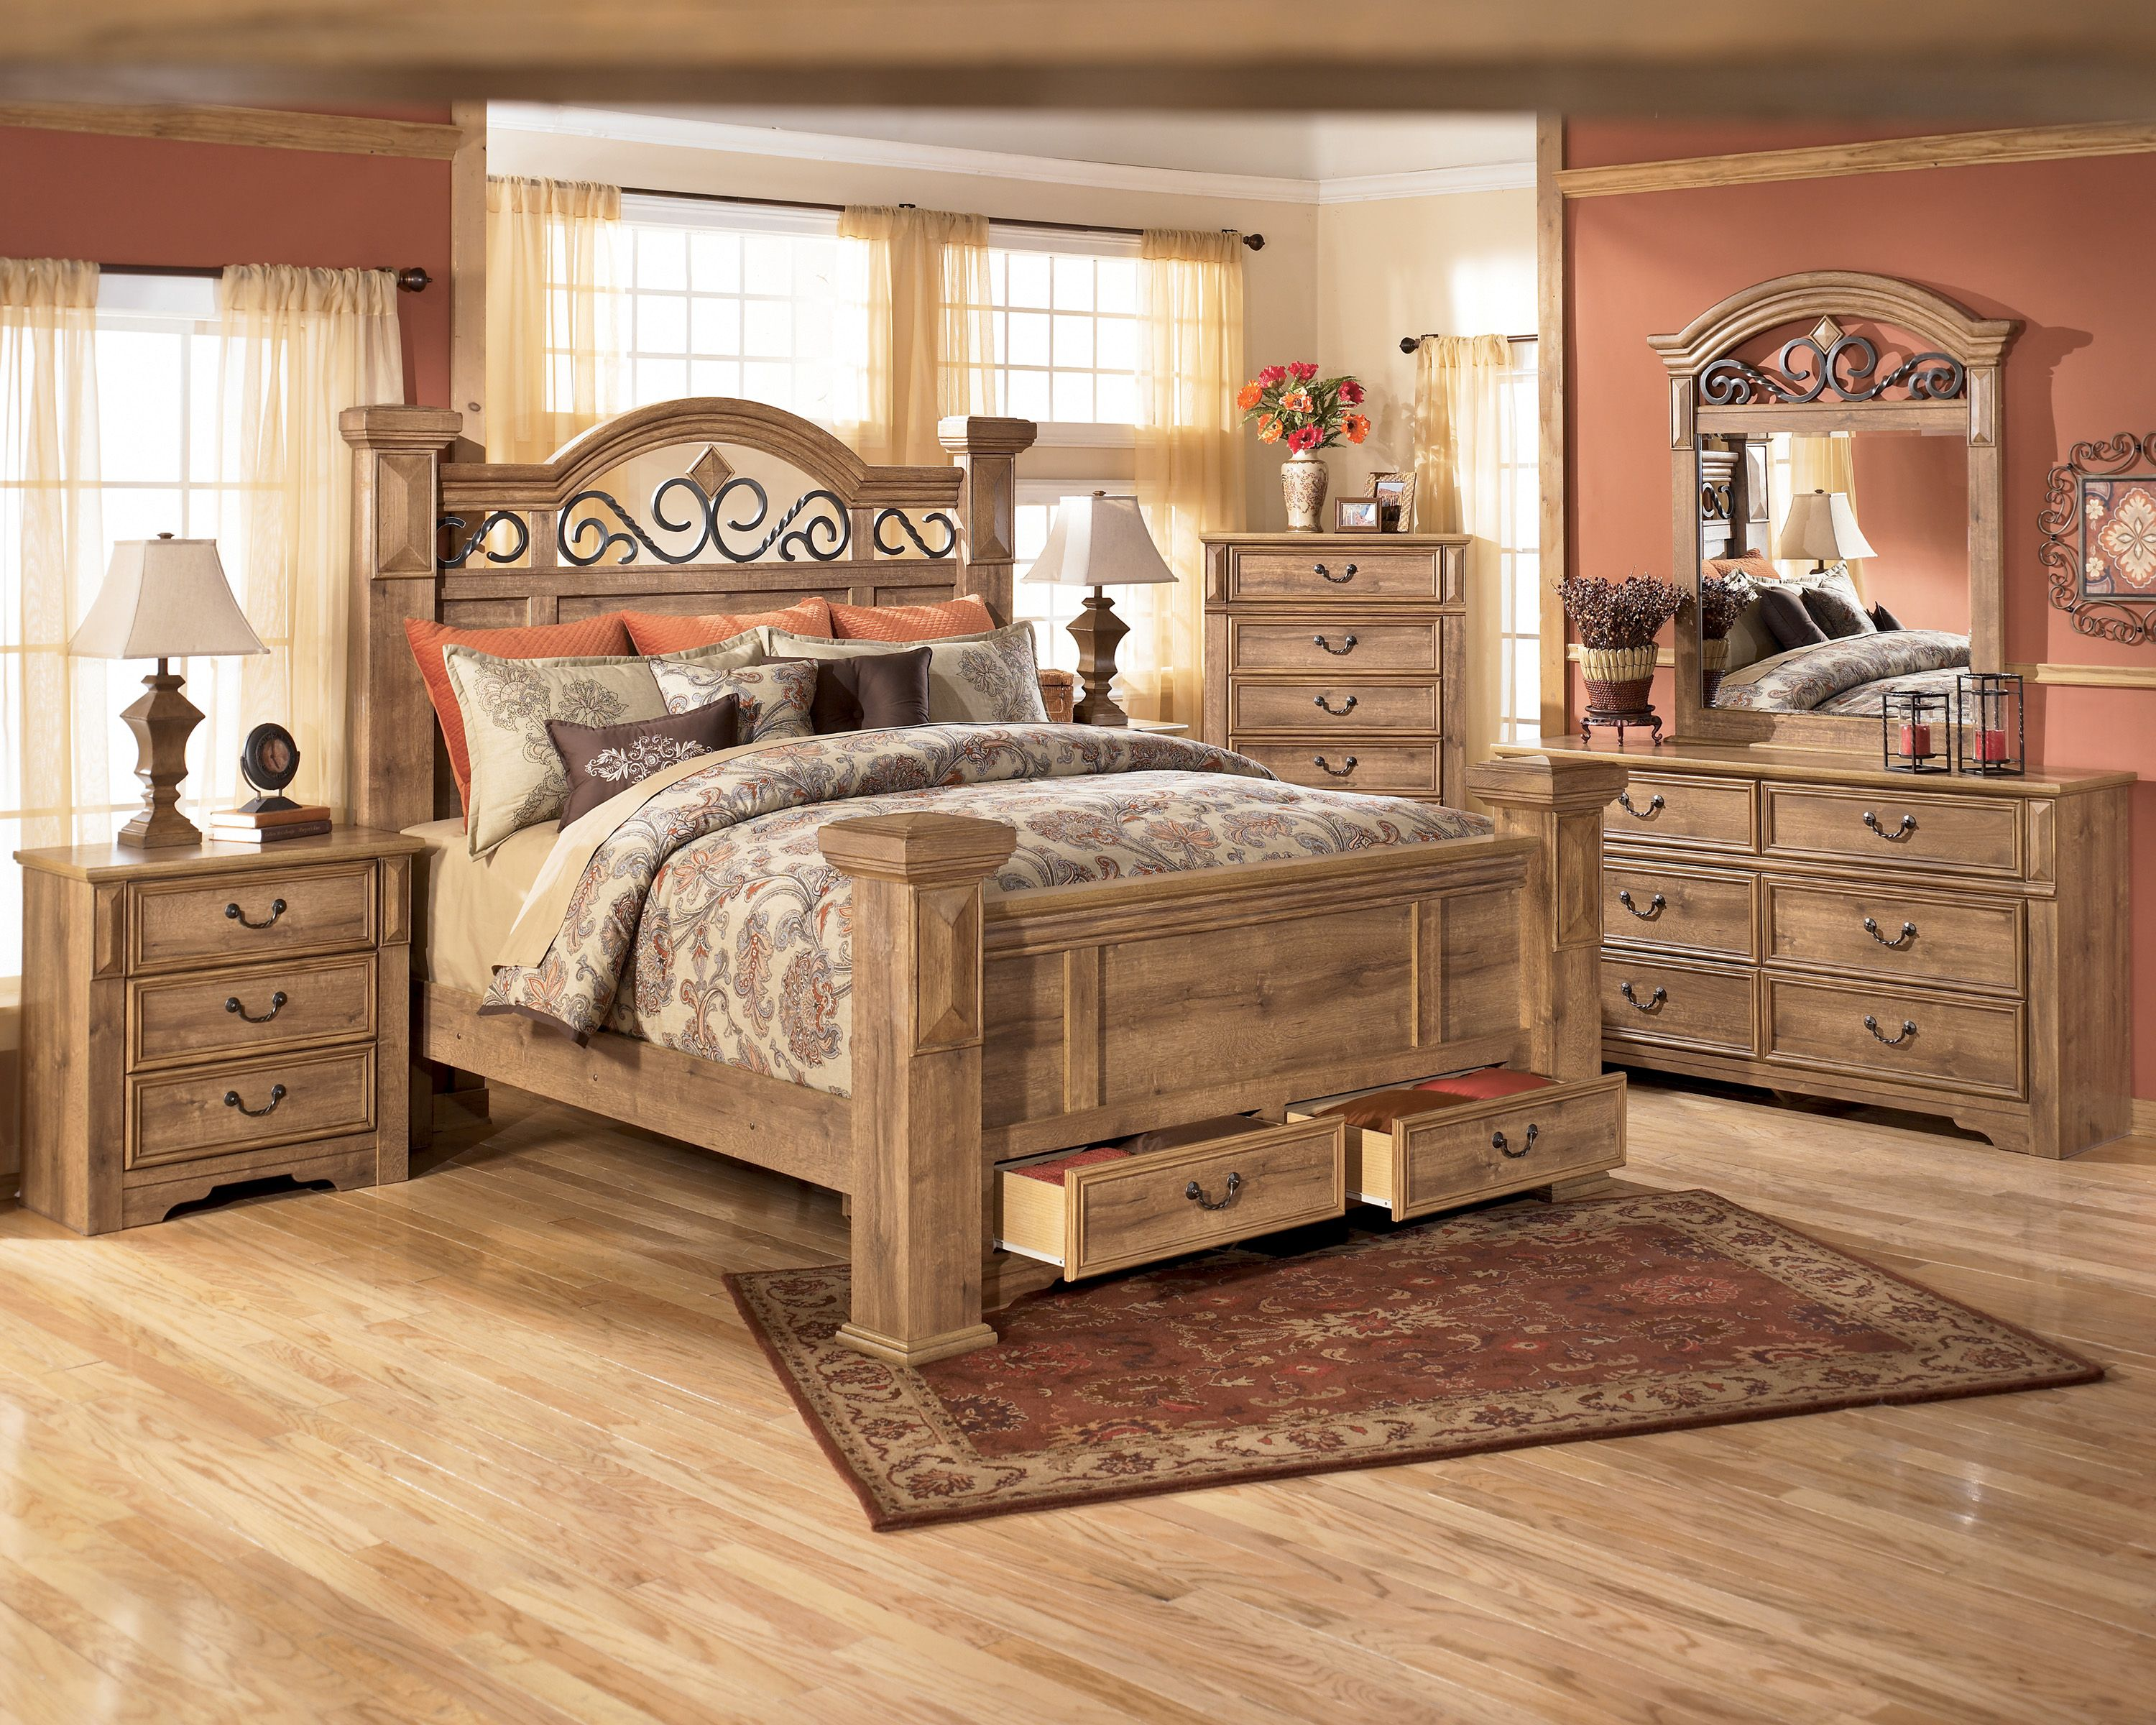 25 best King size bedroom sets ideas on Pinterest Diy bed frame